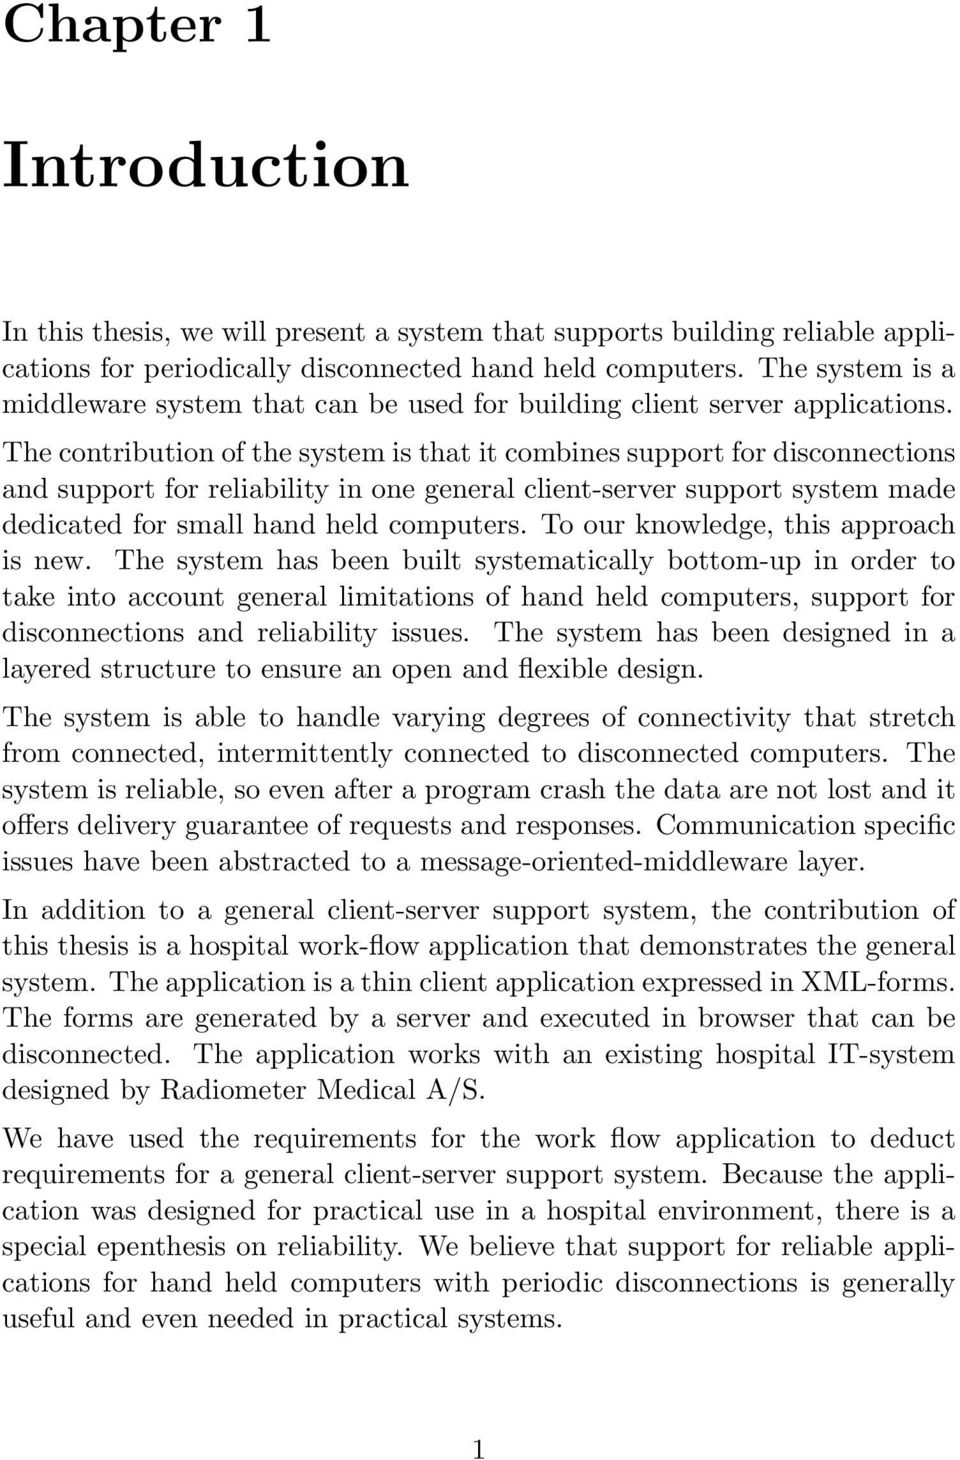 The contribution of the system is that it combines support for disconnections and support for reliability in one general client-server support system made dedicated for small hand held computers.